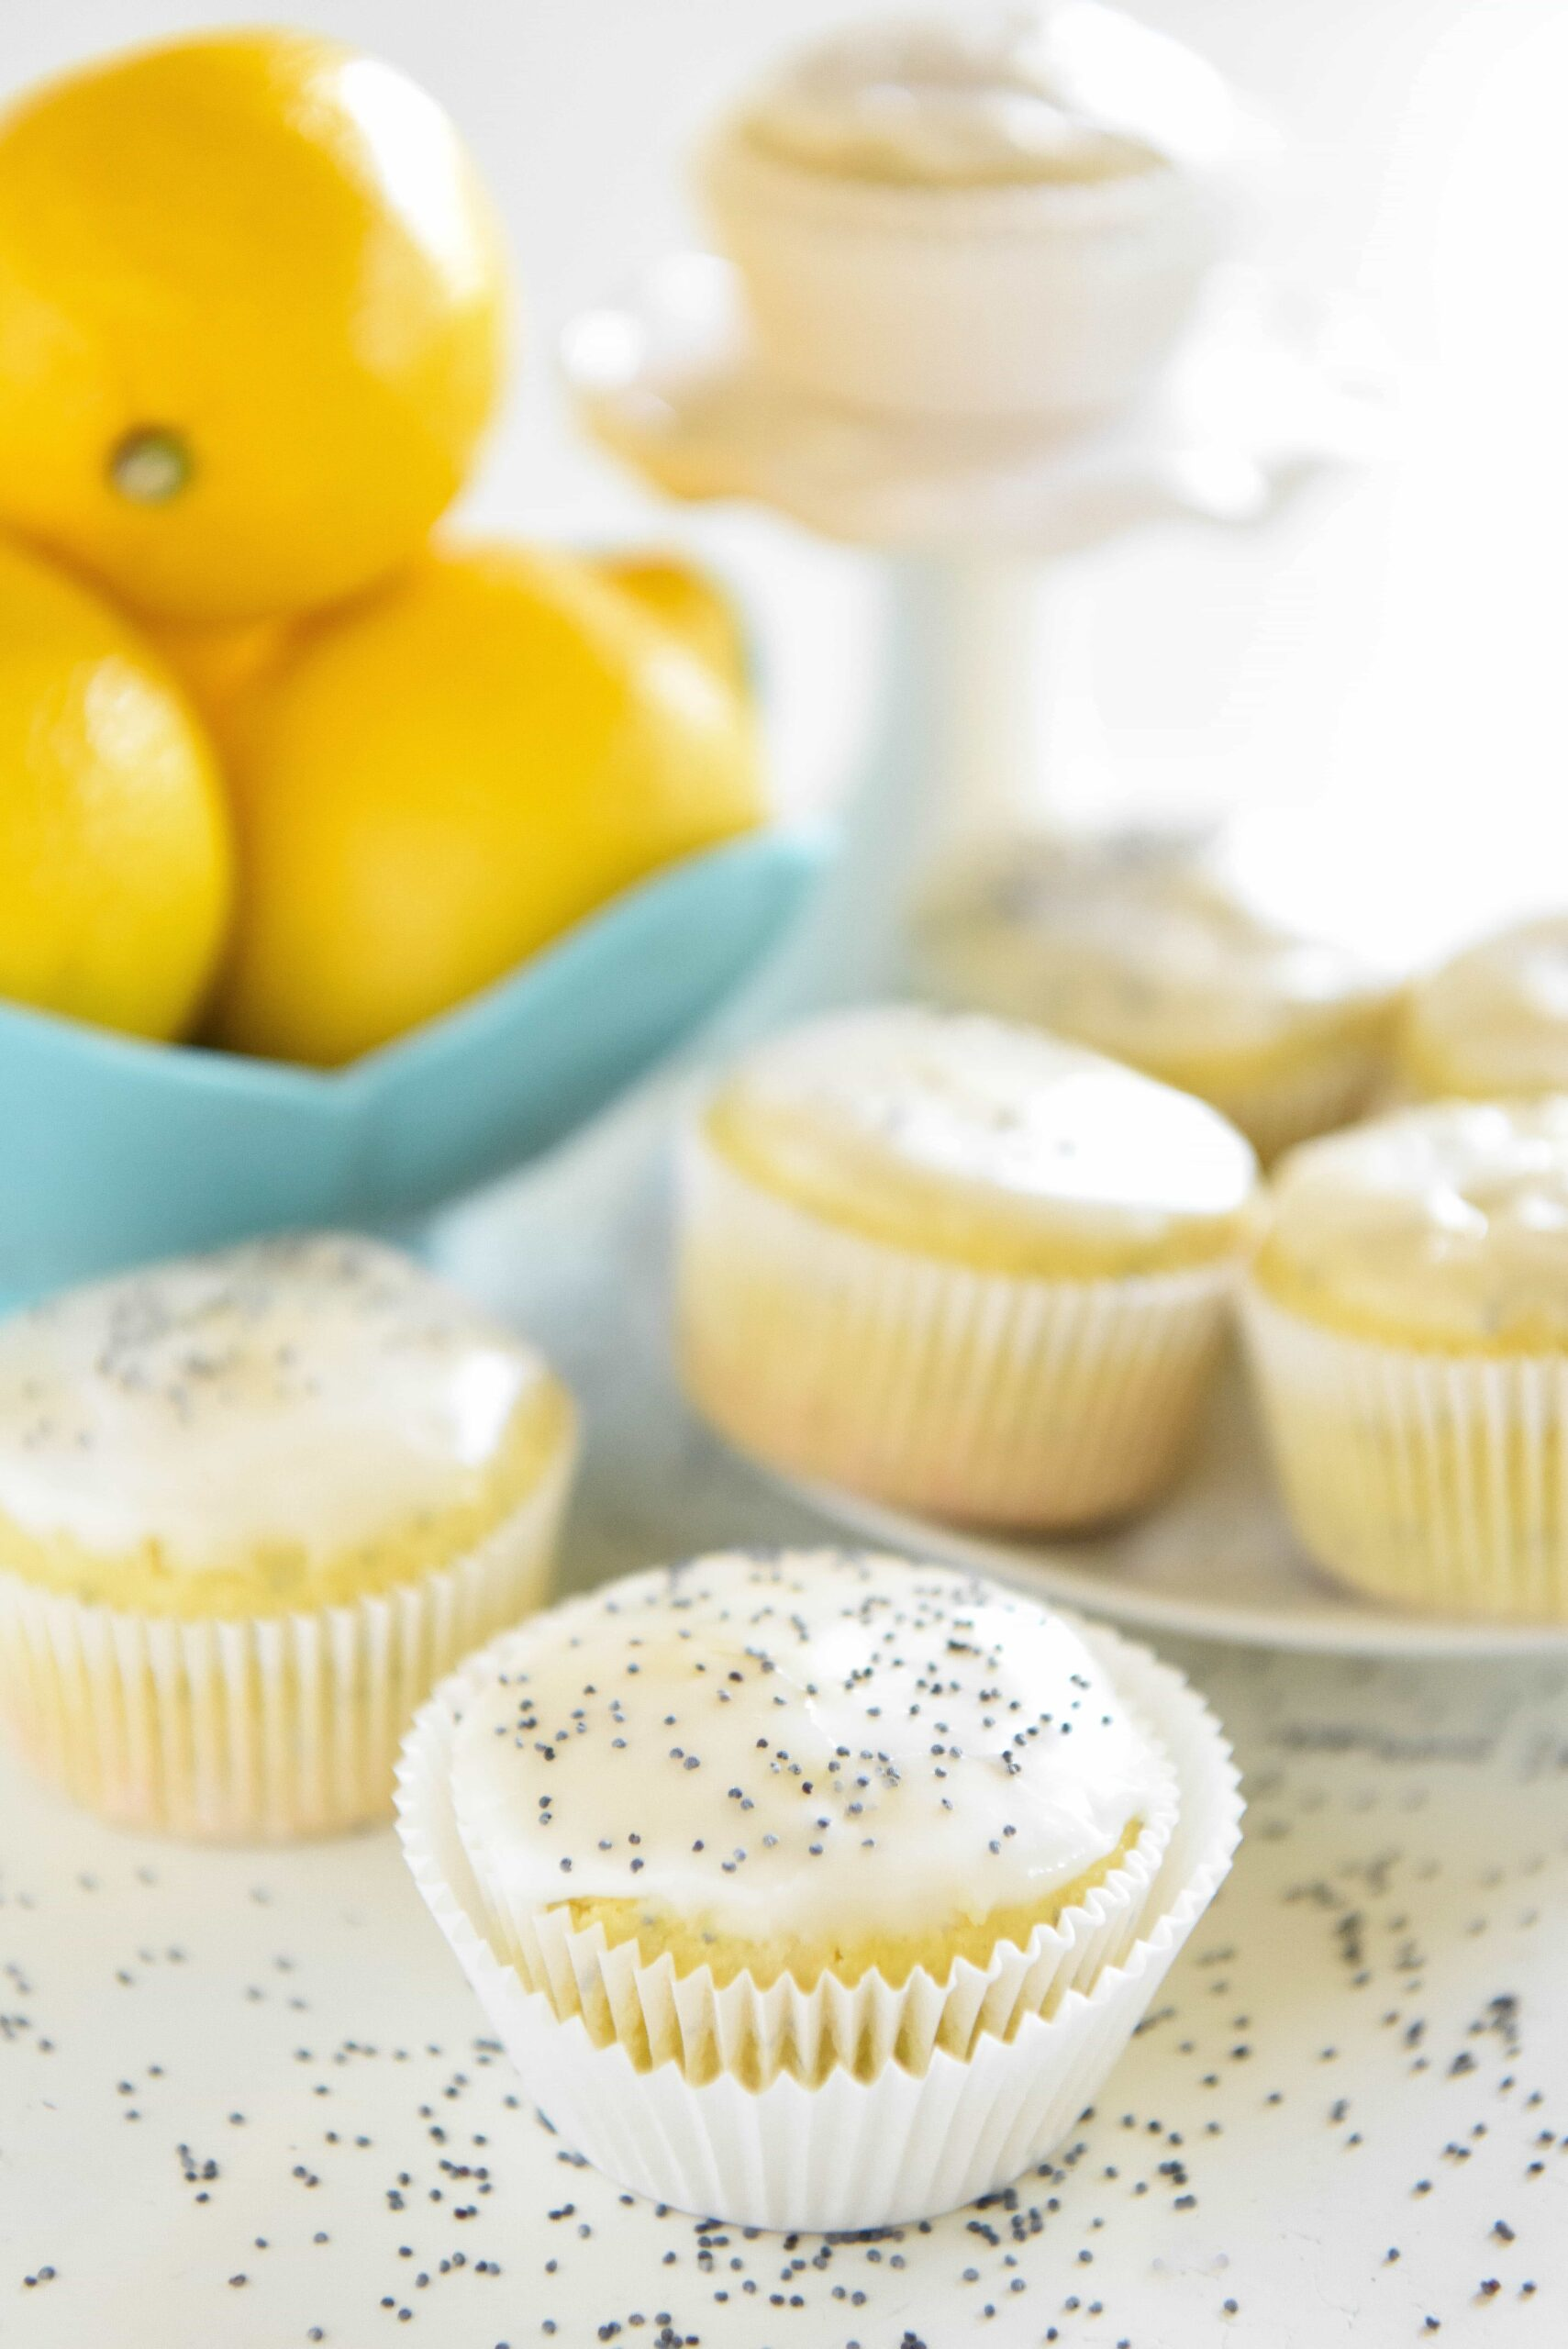 A Single Lemon Poppy Seed Muffin on a Poppyseed-Covered Countertop with More Muffins in the Background